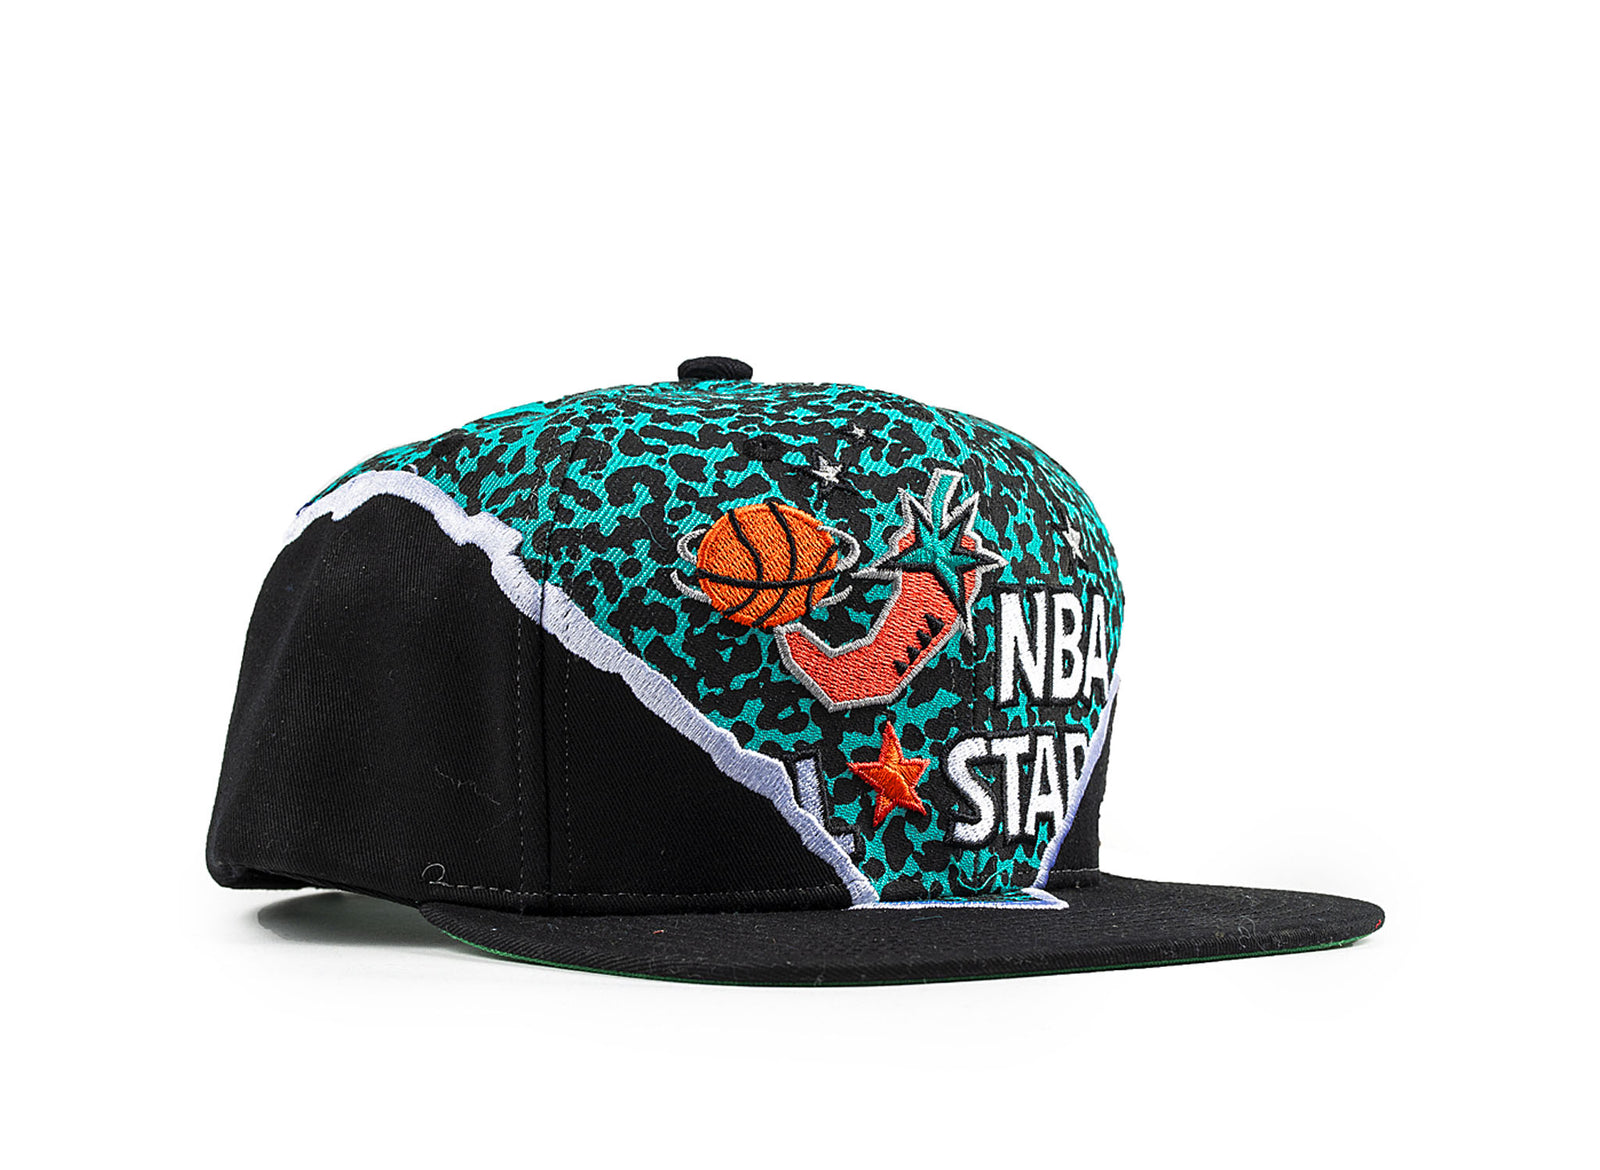 59dce12d712 MITCHELL   NESS 96  ALL STAR TEAR IT UP SNAPBACK